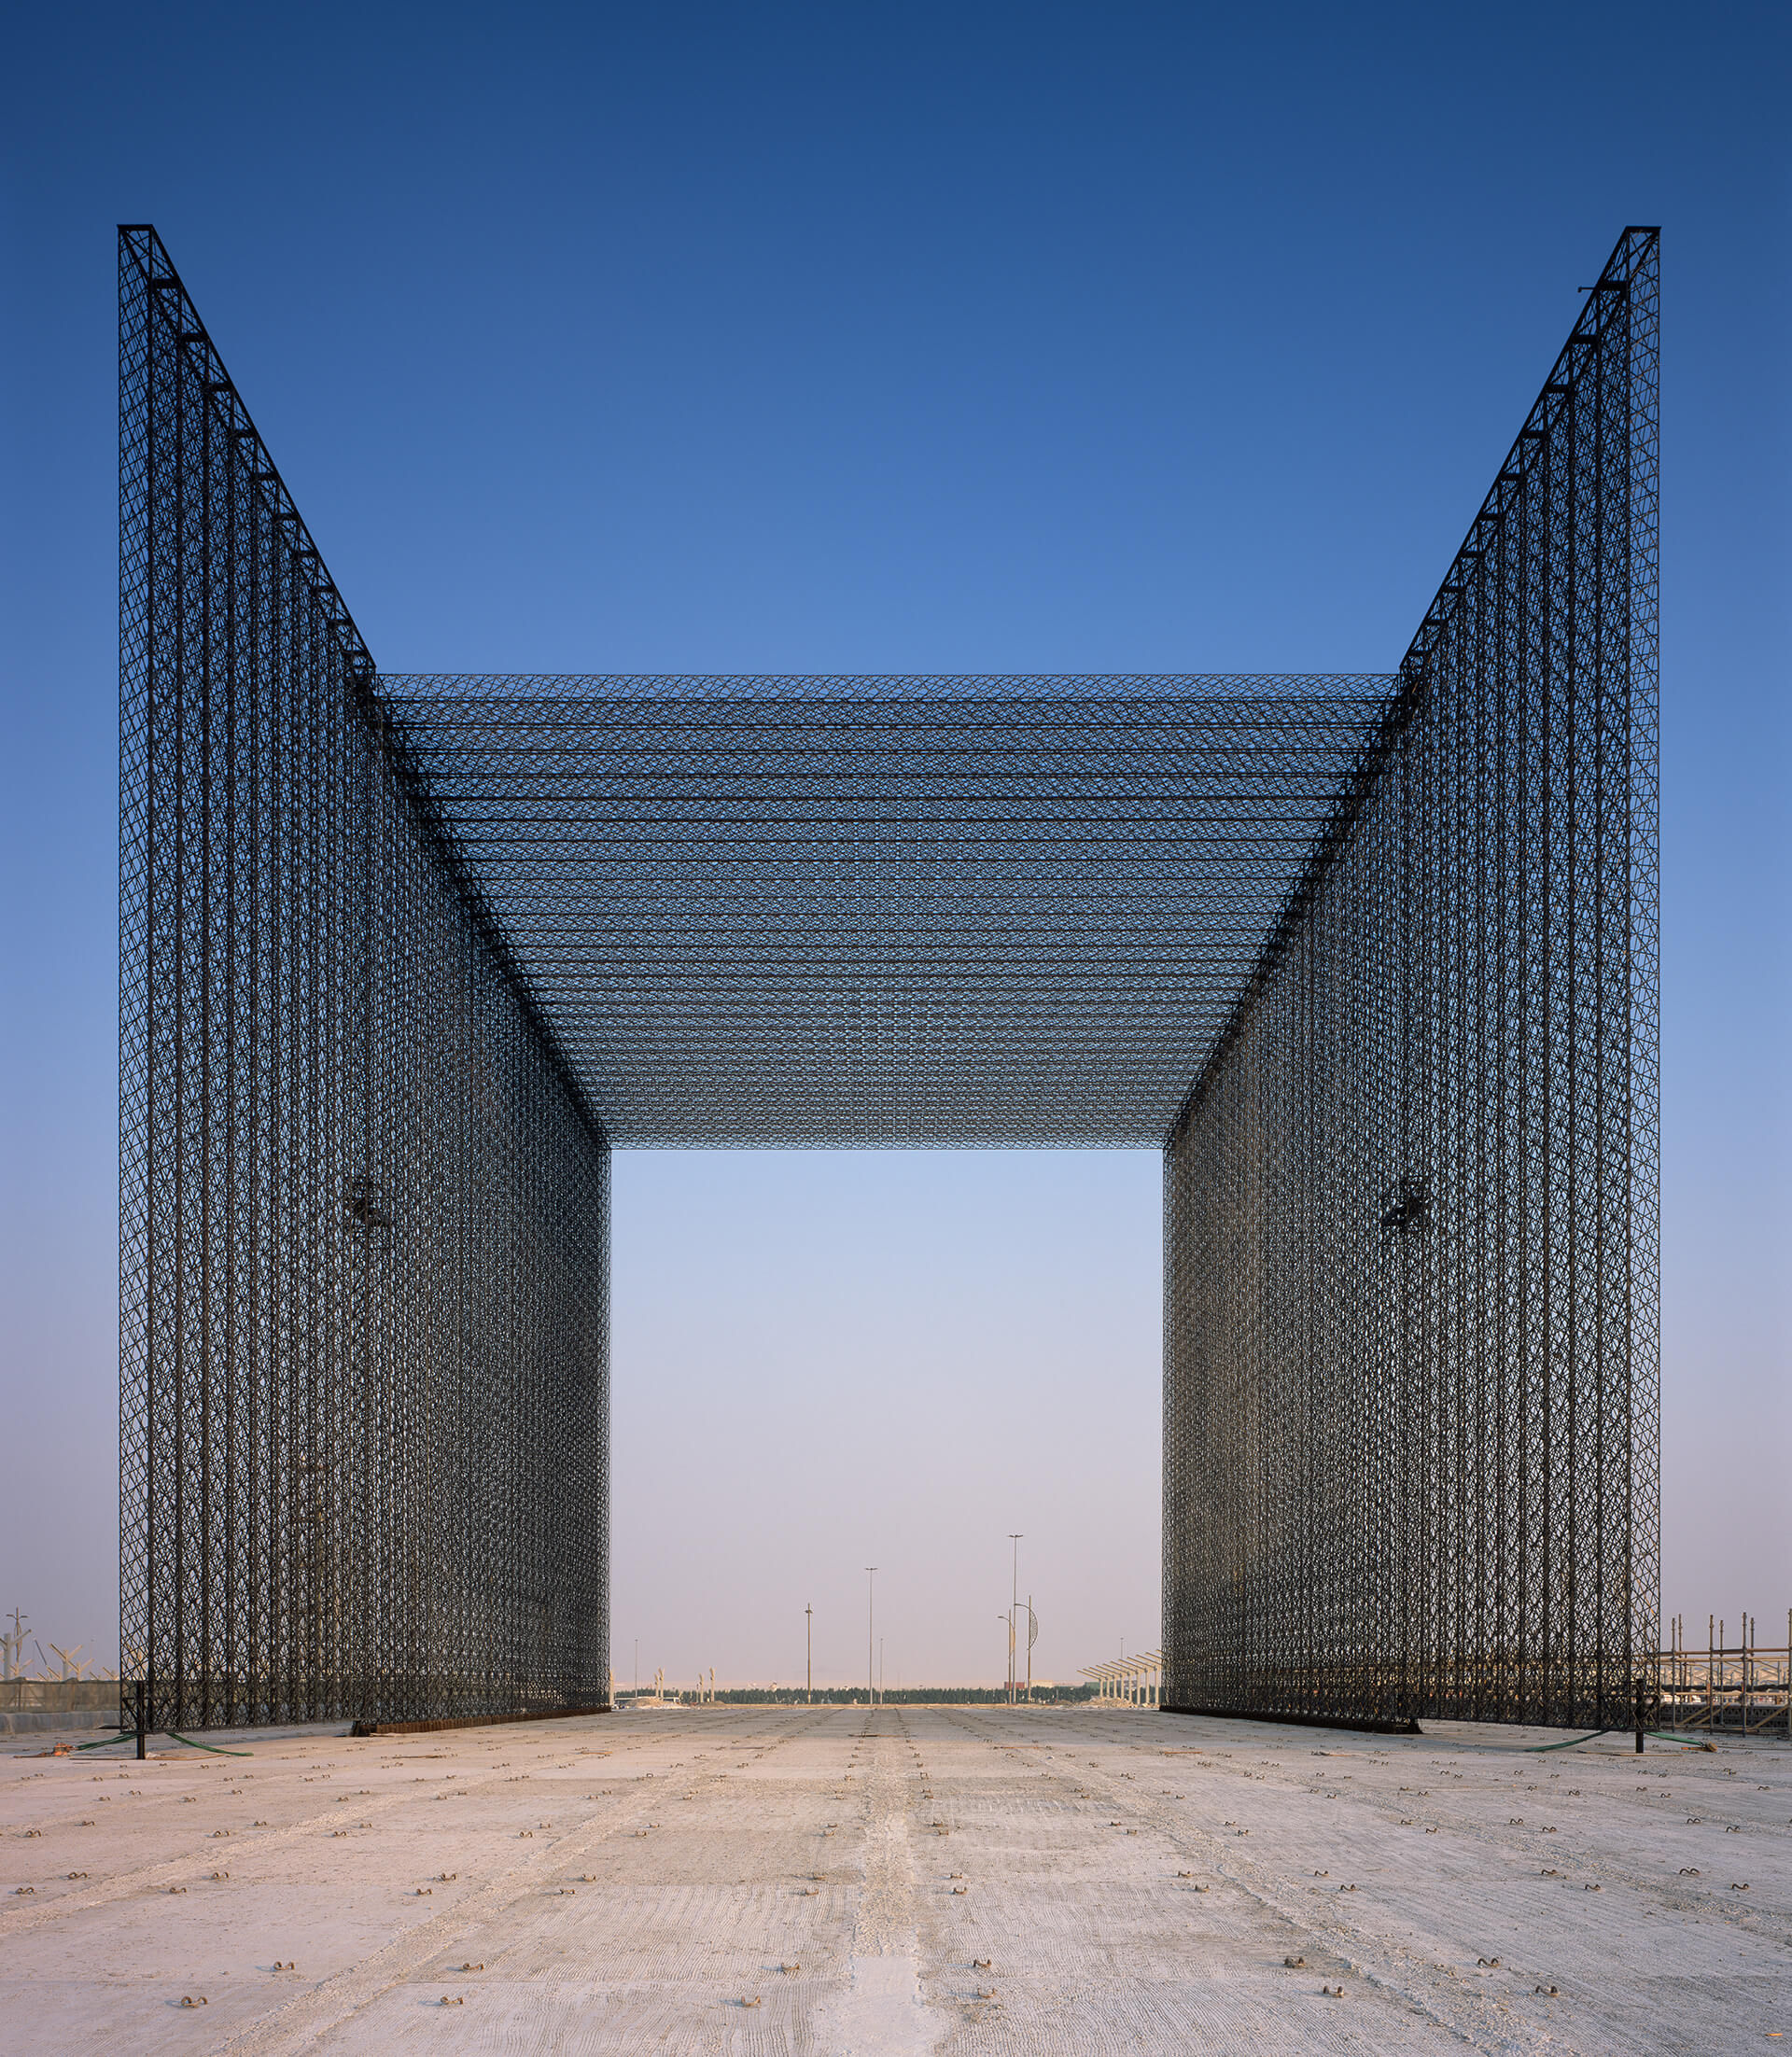 The portals are six-storey tall and 30 meters in length | Entry Portals | Expo 2020 Dubai | Asif Khan | STIRworld